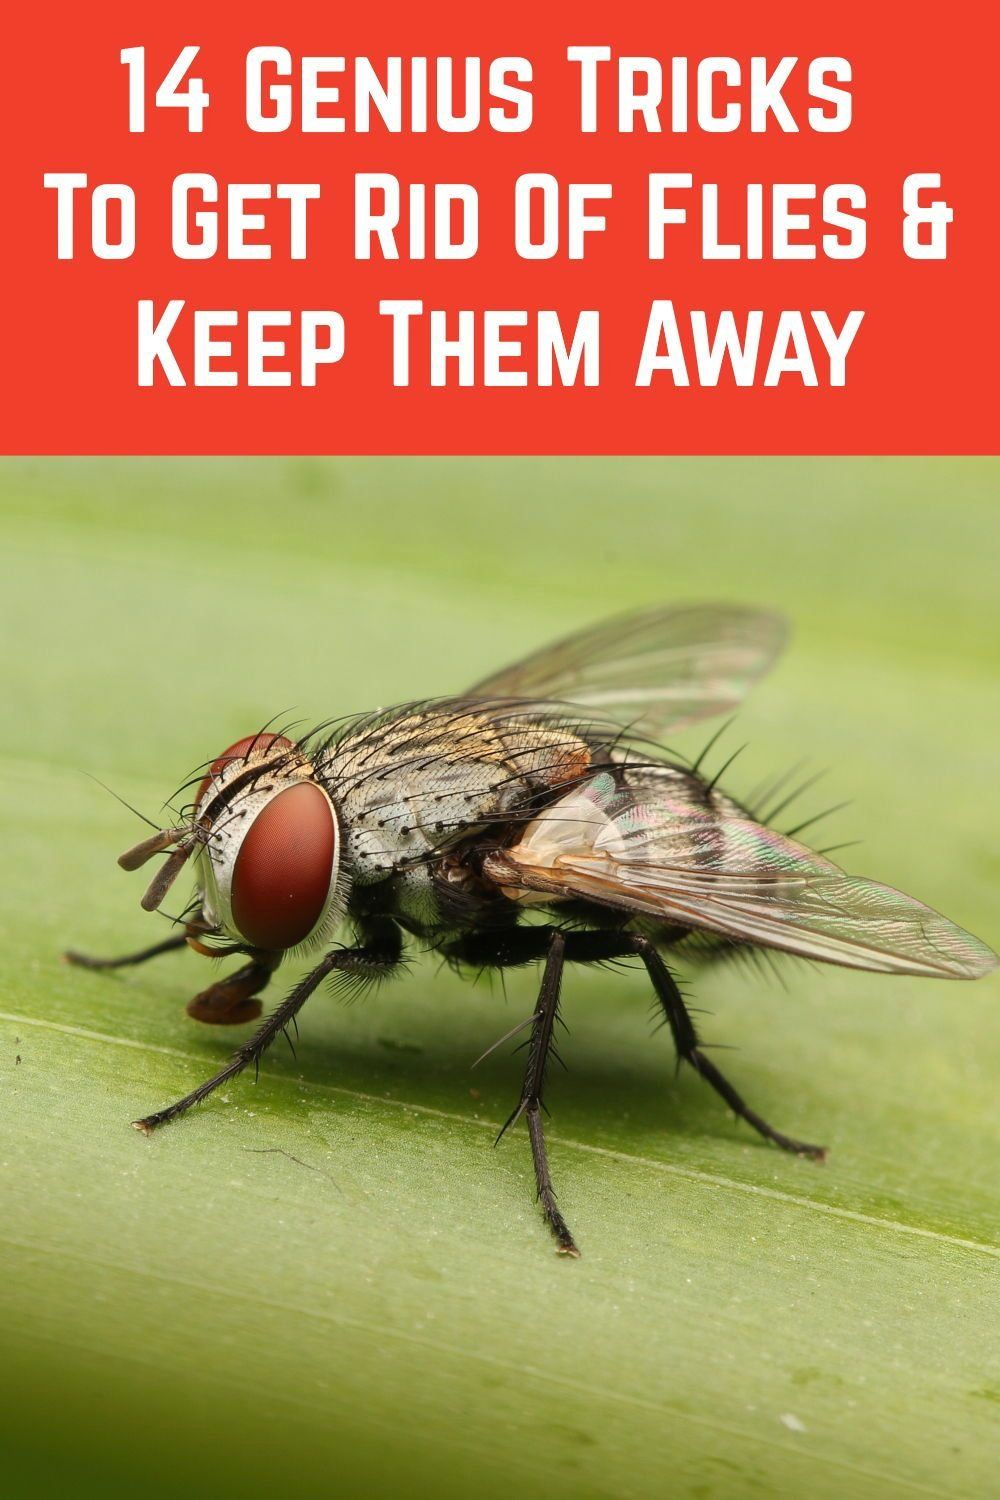 de43c78bdff4cfede92590c625acf6f8 - How To Get Rid Of Green Flies In The House